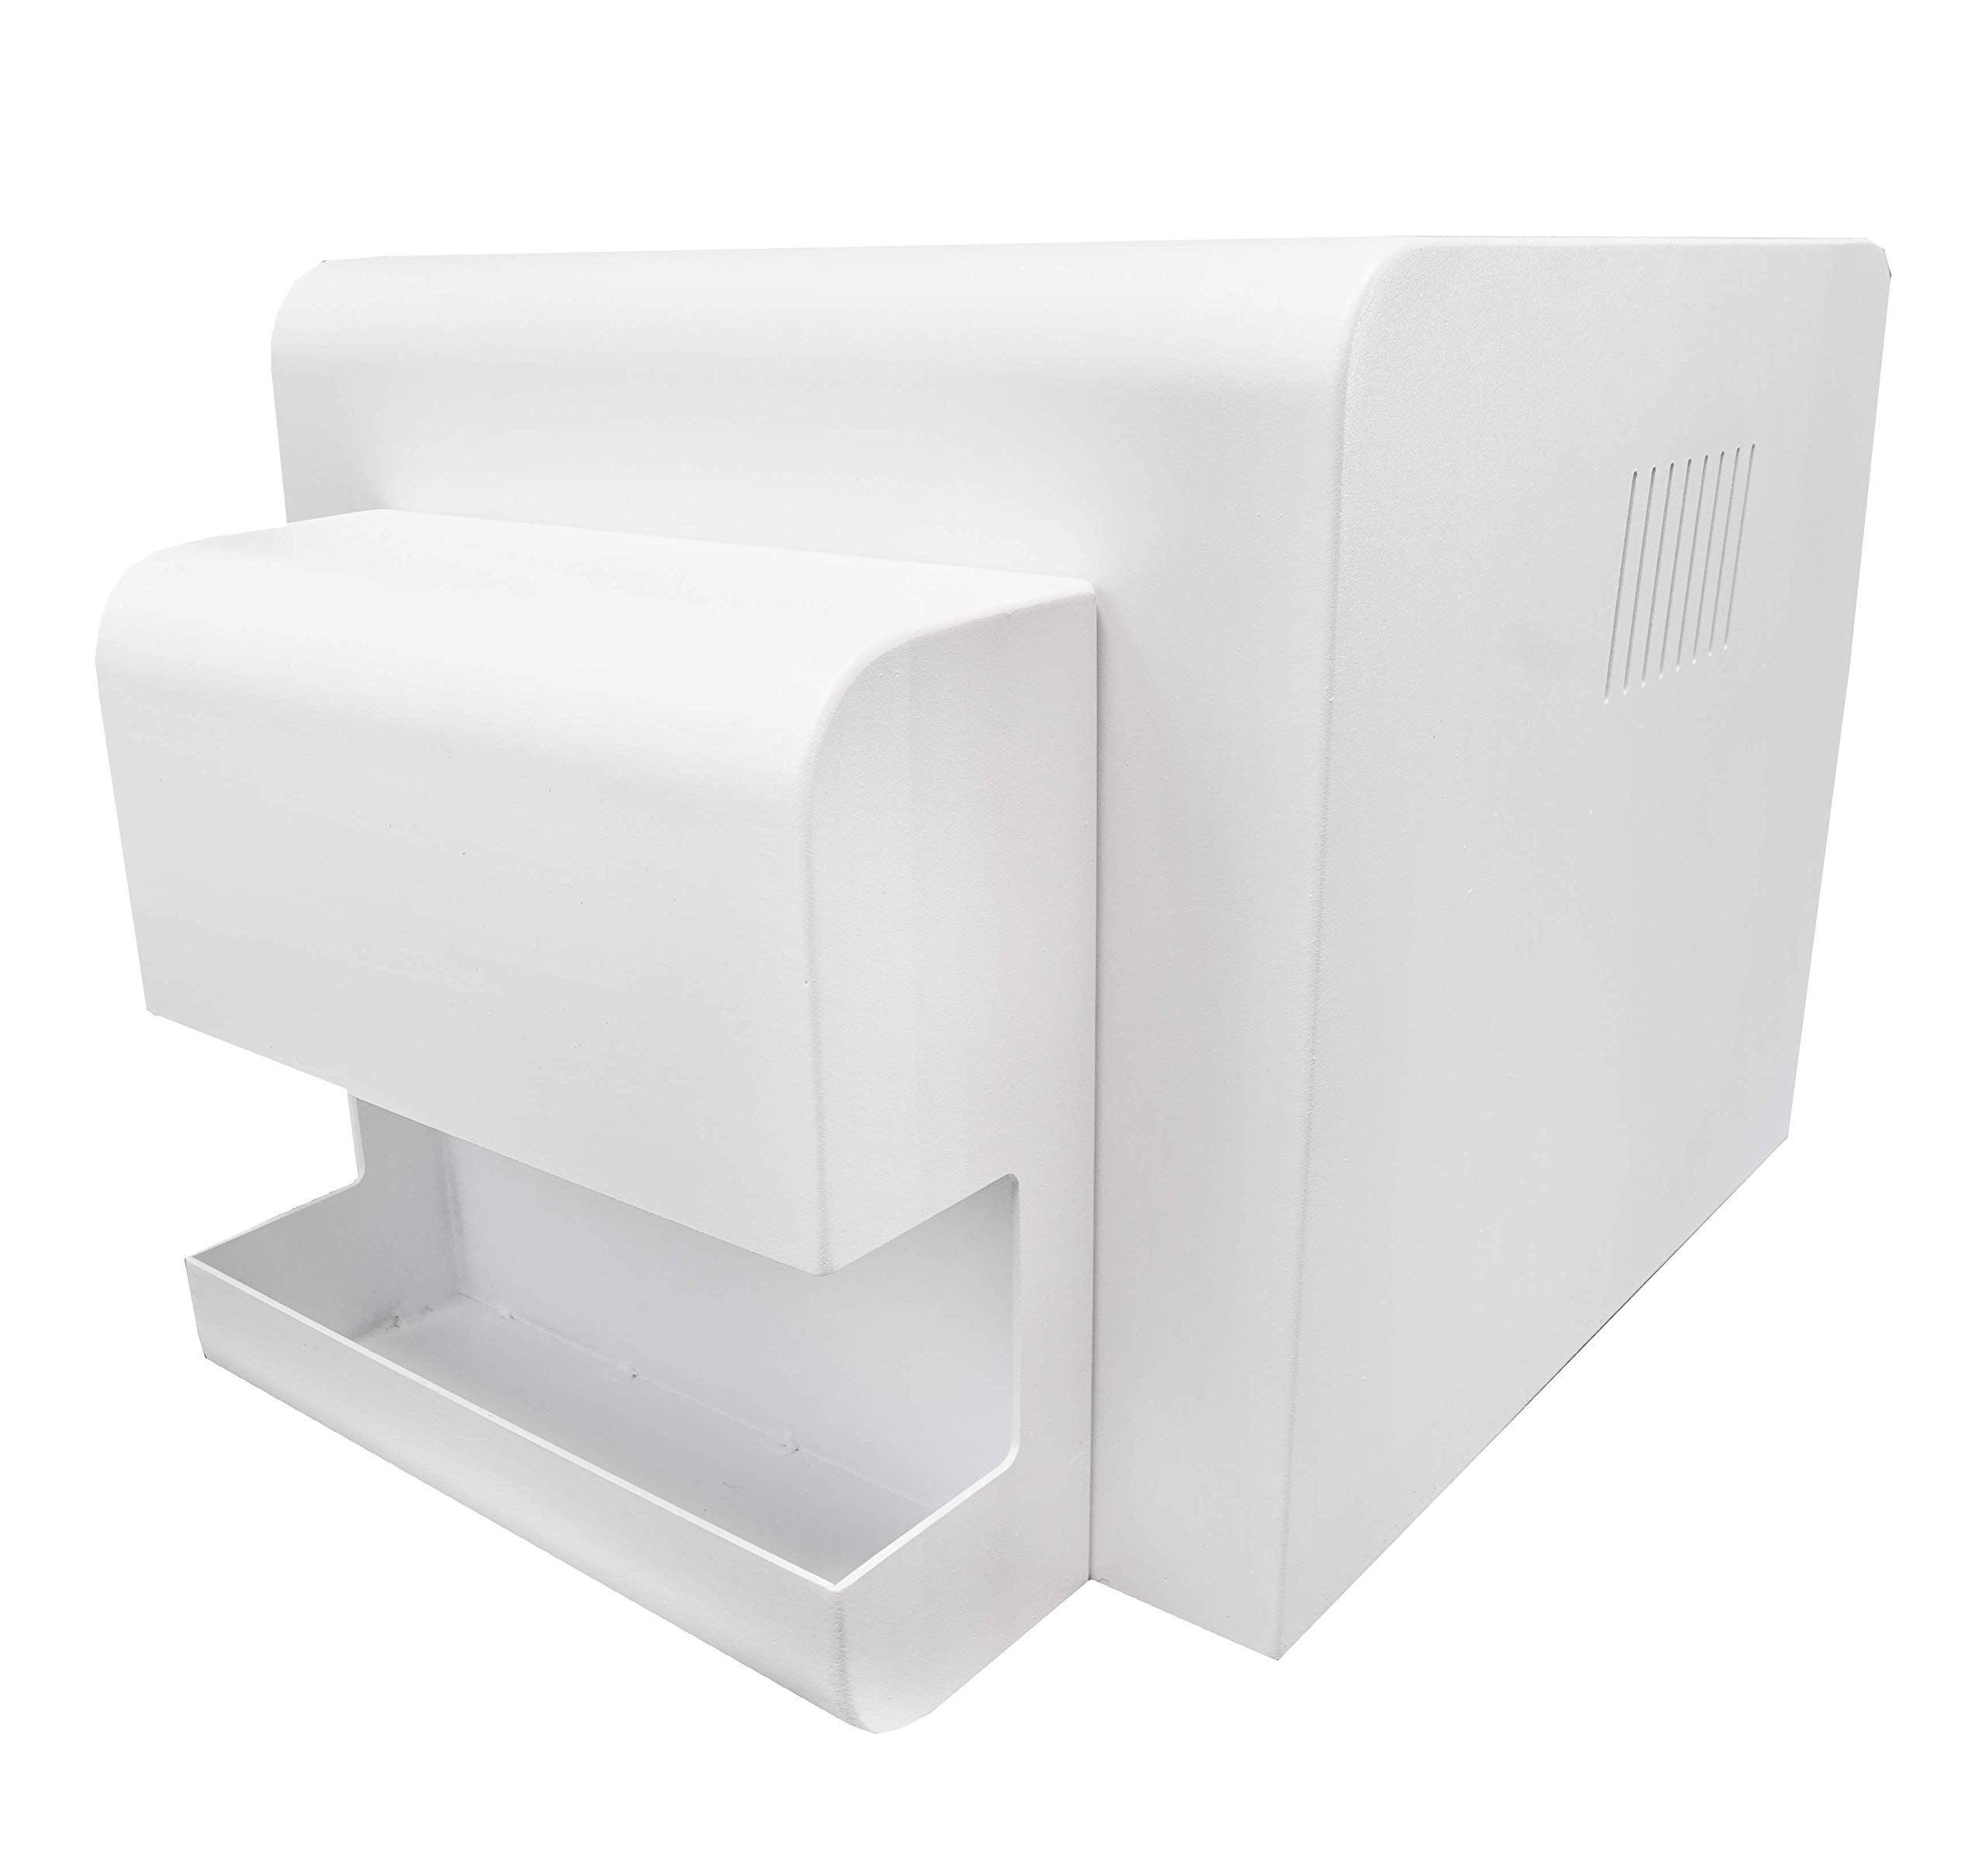 RX1HS Printer Cover with Removable Custom Tray White